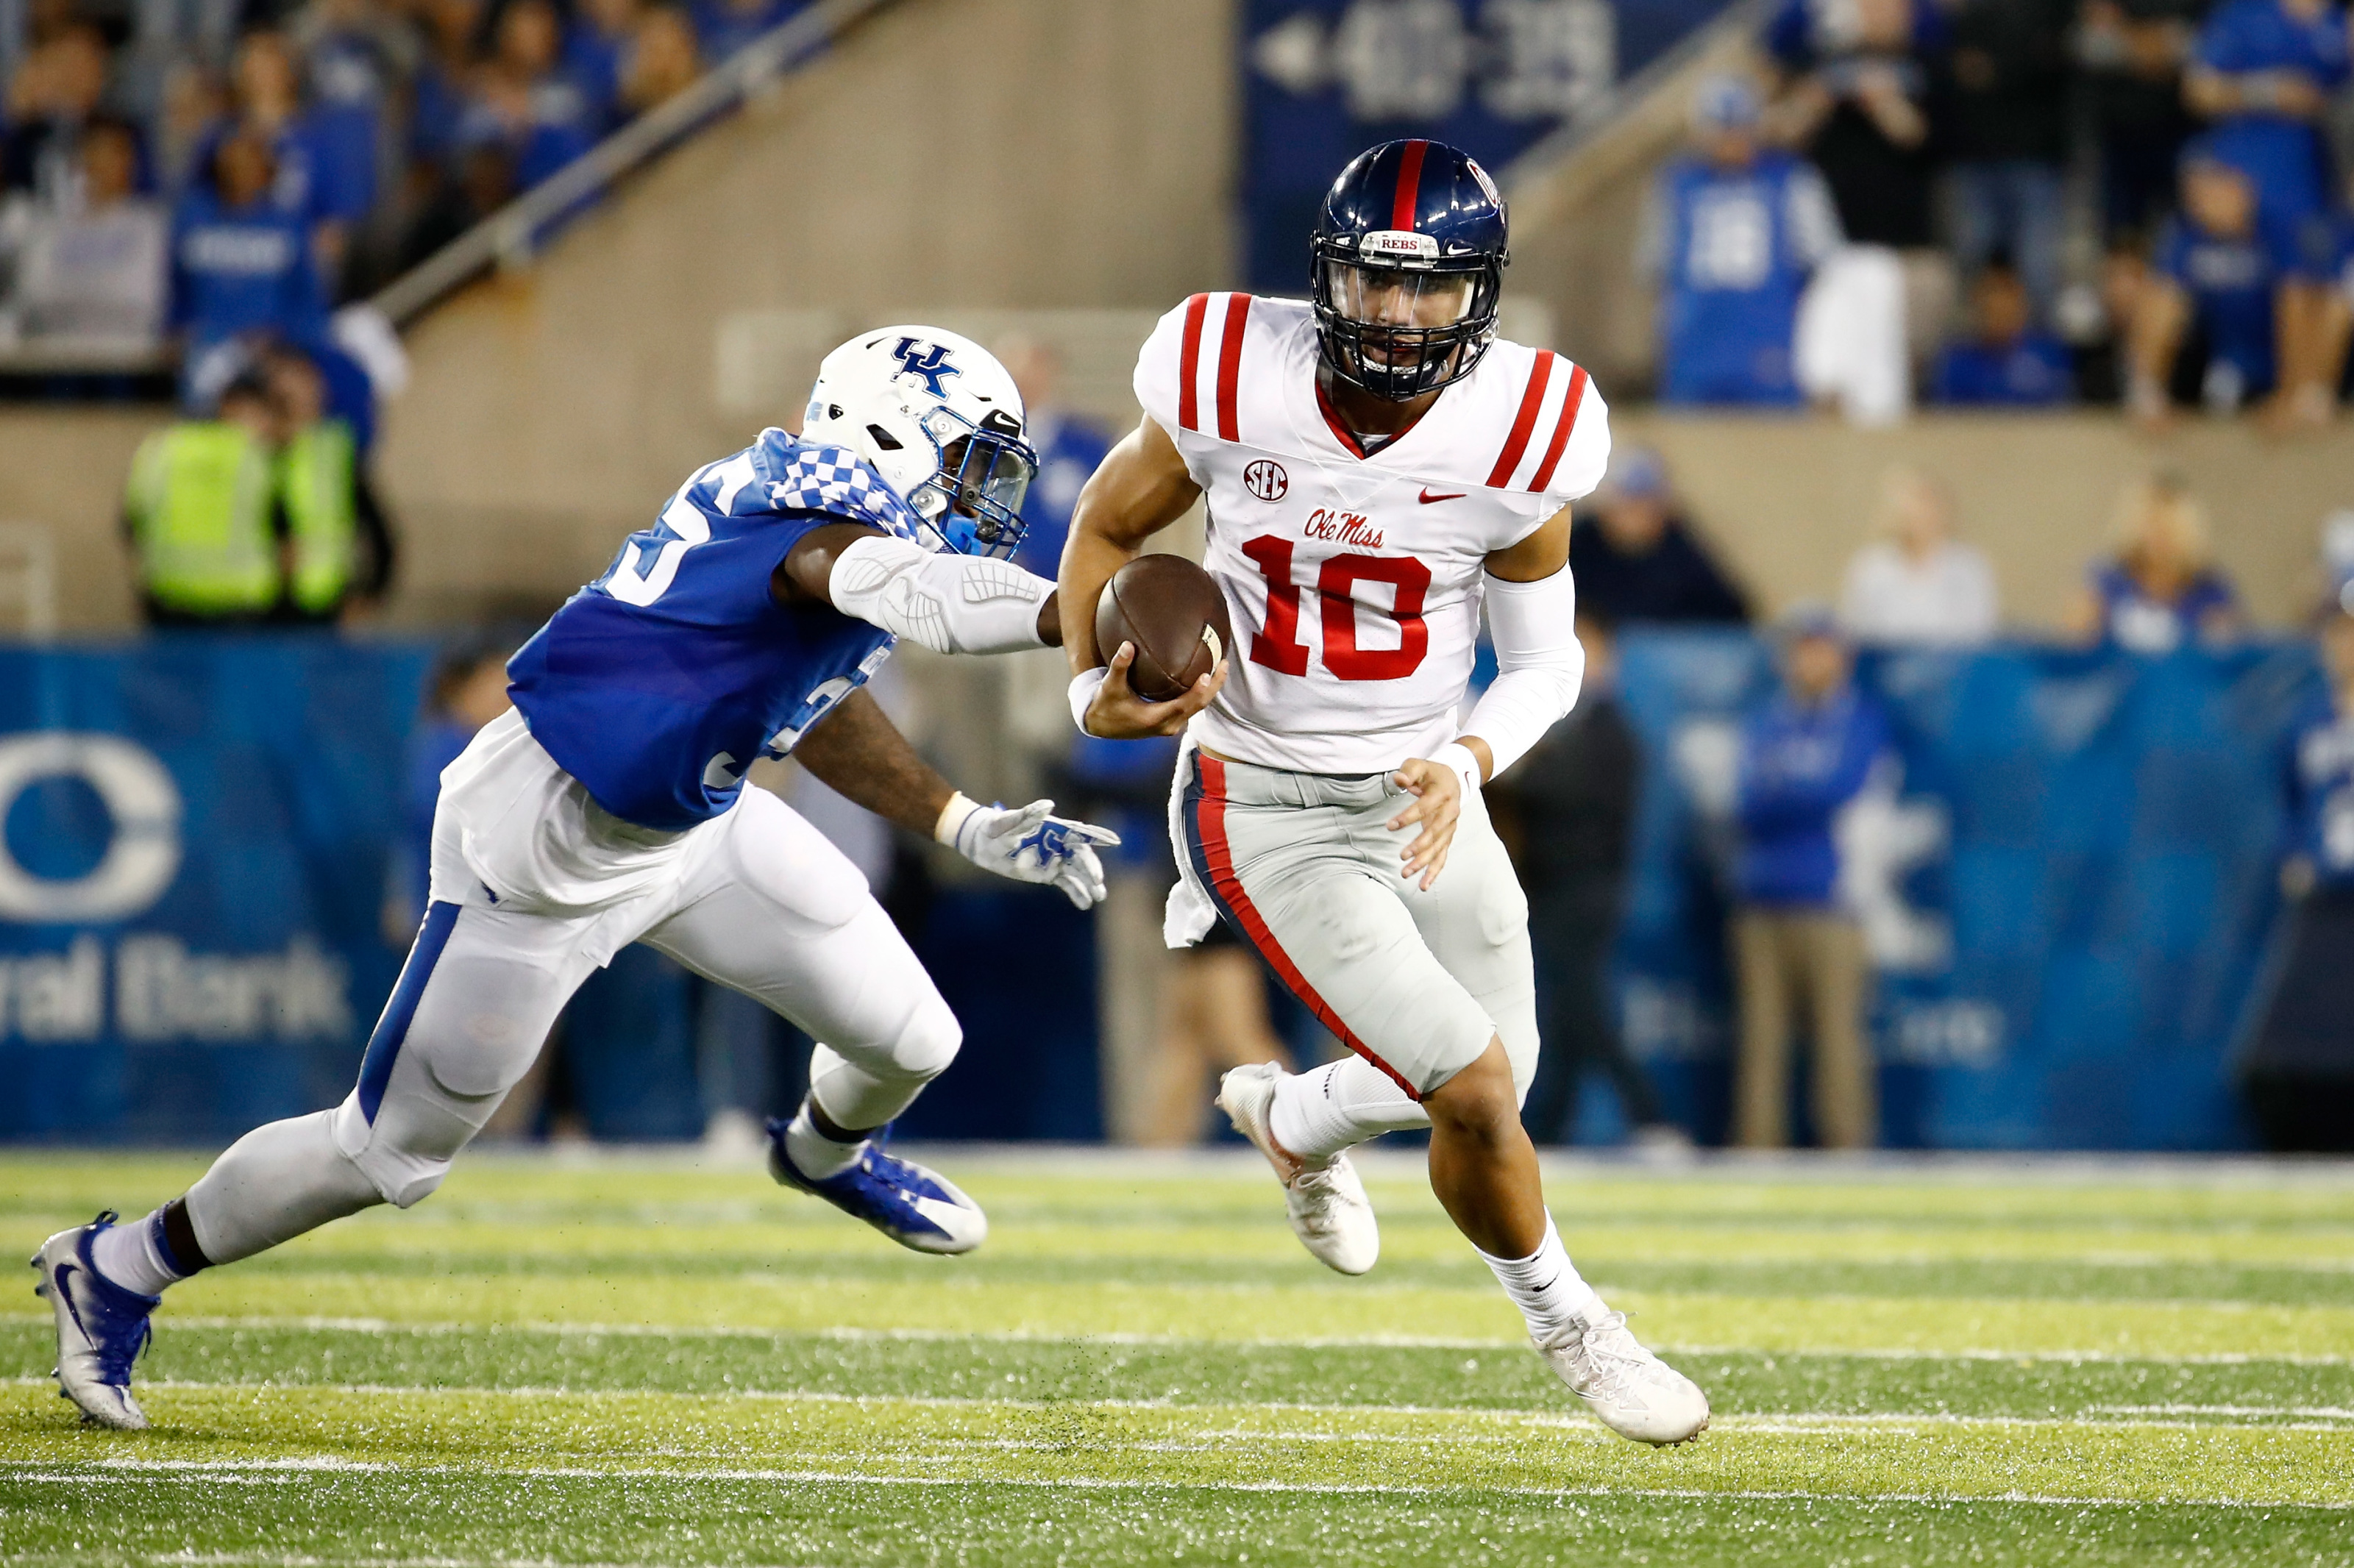 Ole Miss Football A Look At The 2018 Rebels Quarterbacks